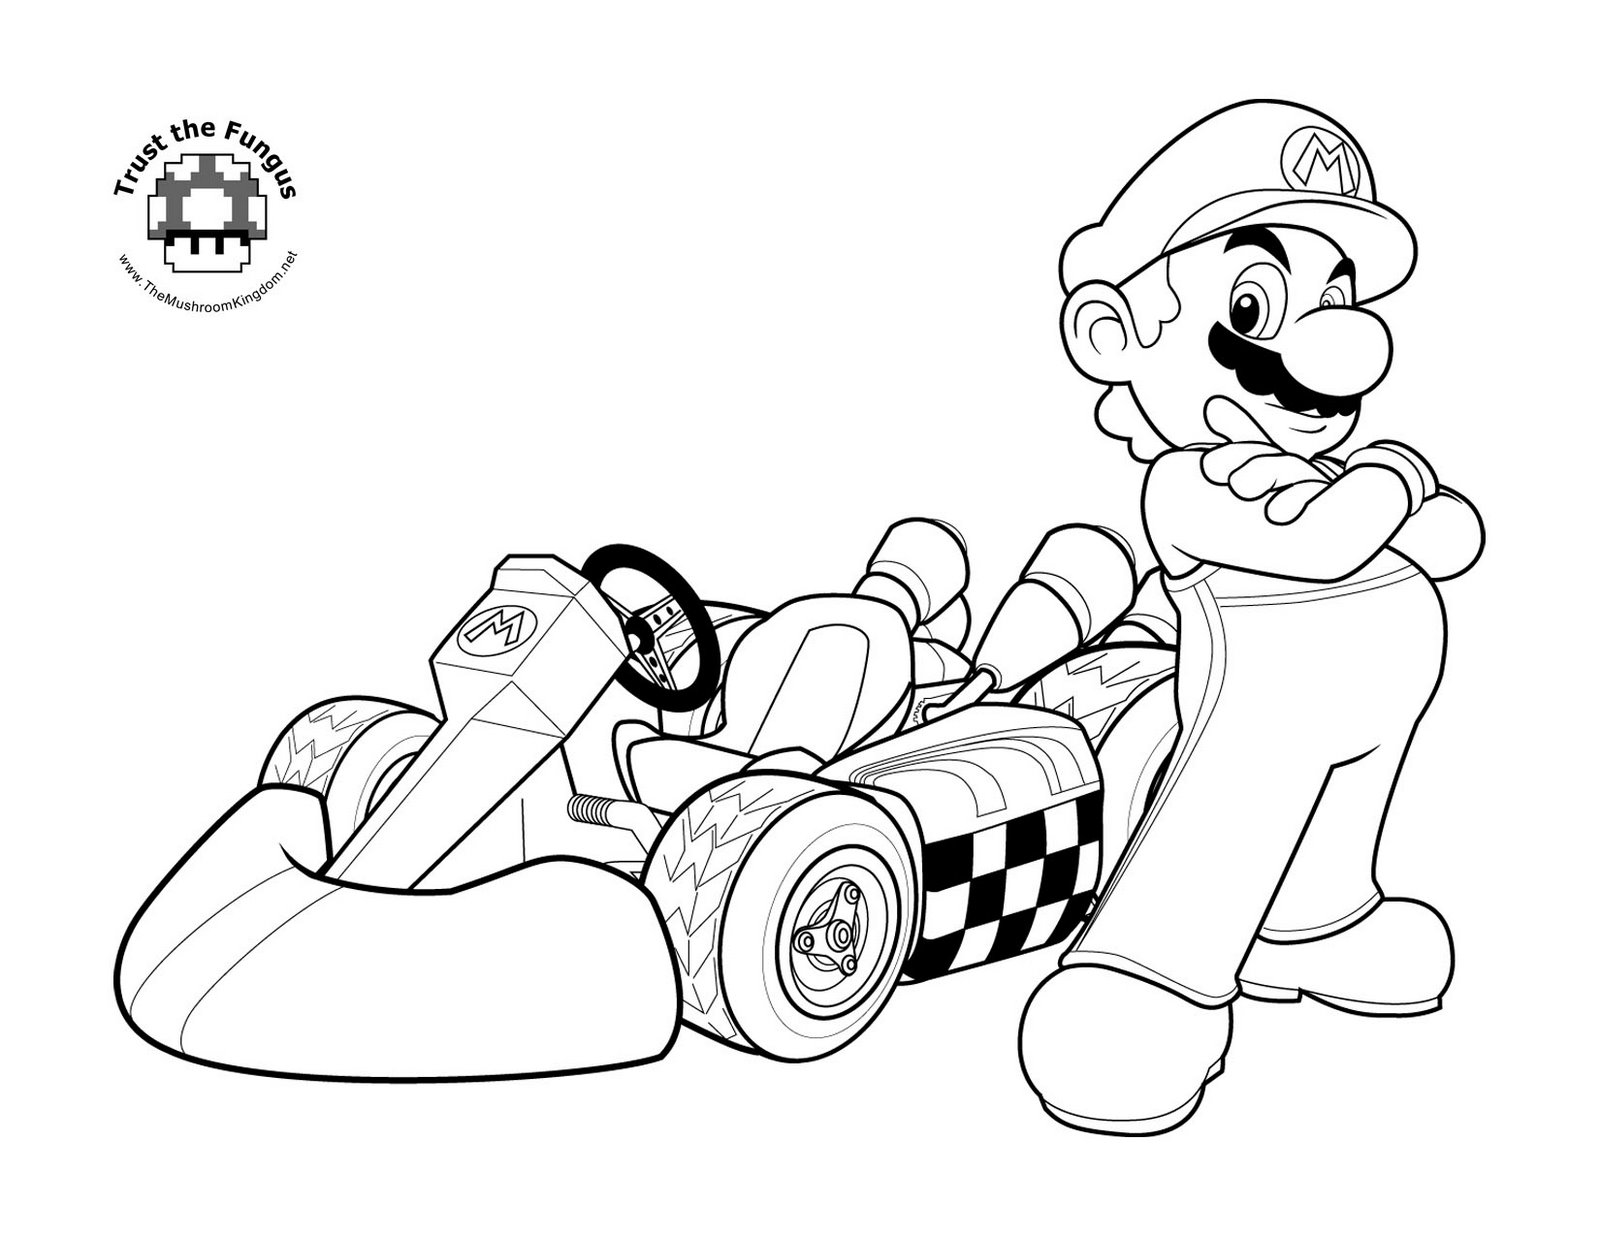 mario picture to color mario coloring pages themes best apps for kids mario color to picture